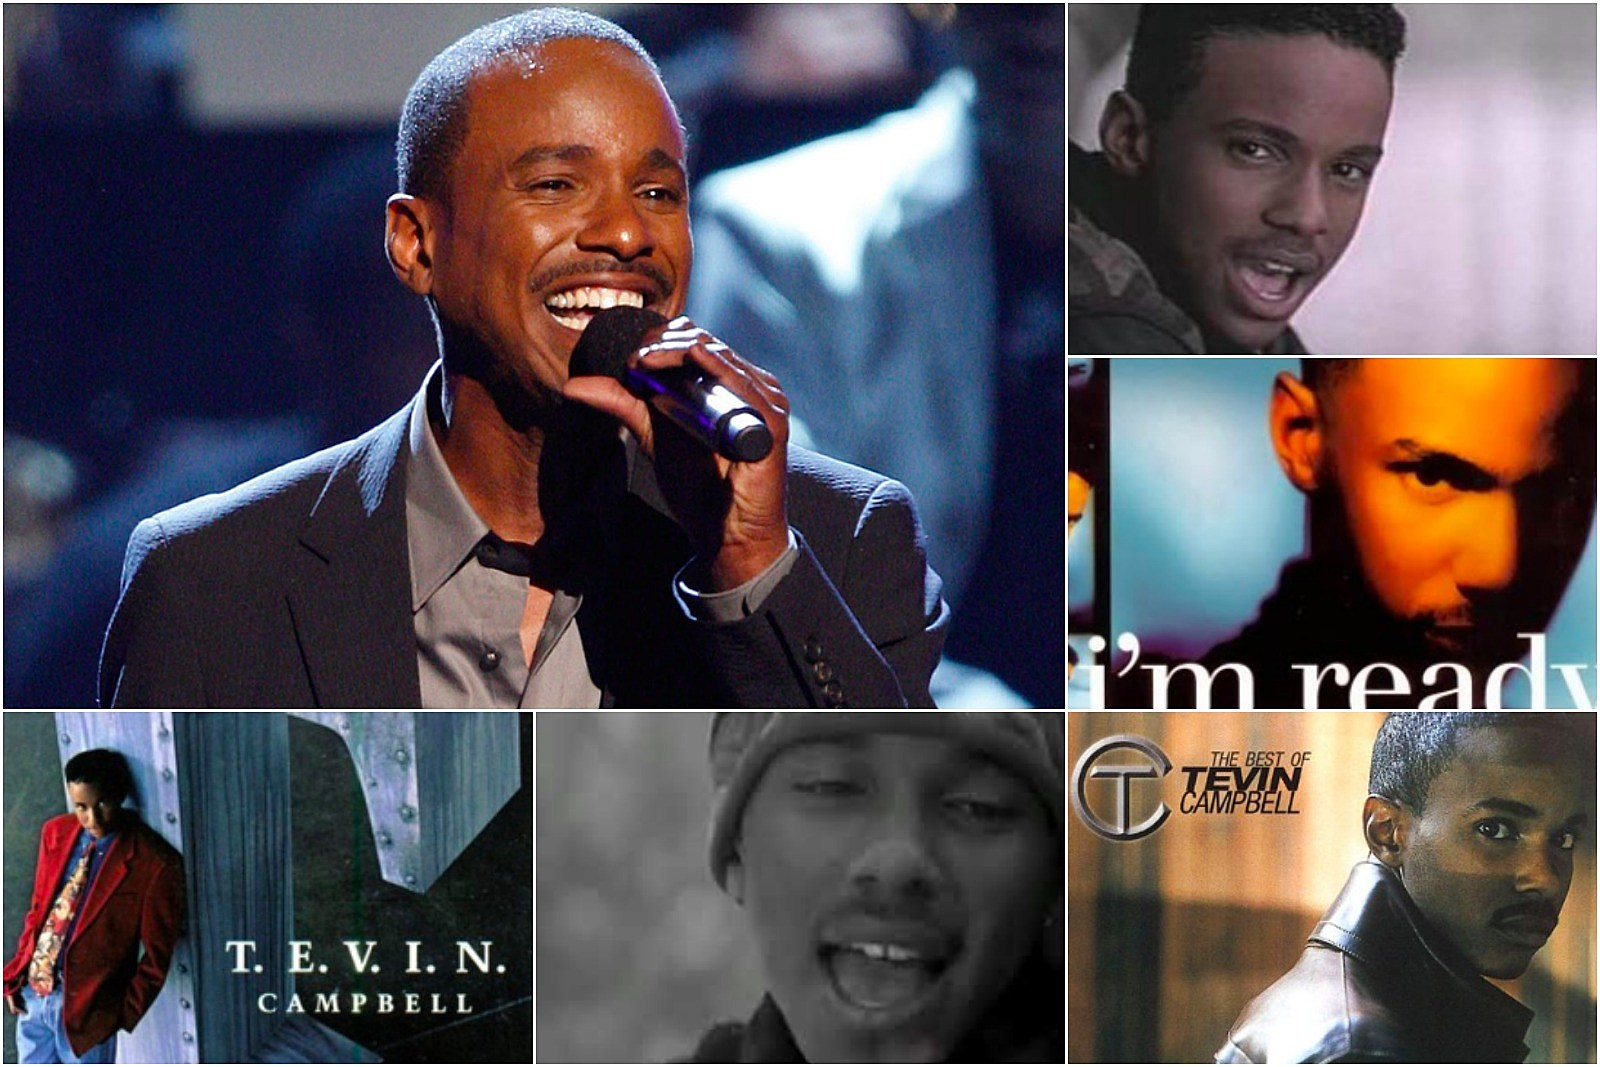 tevin campbell album im ready